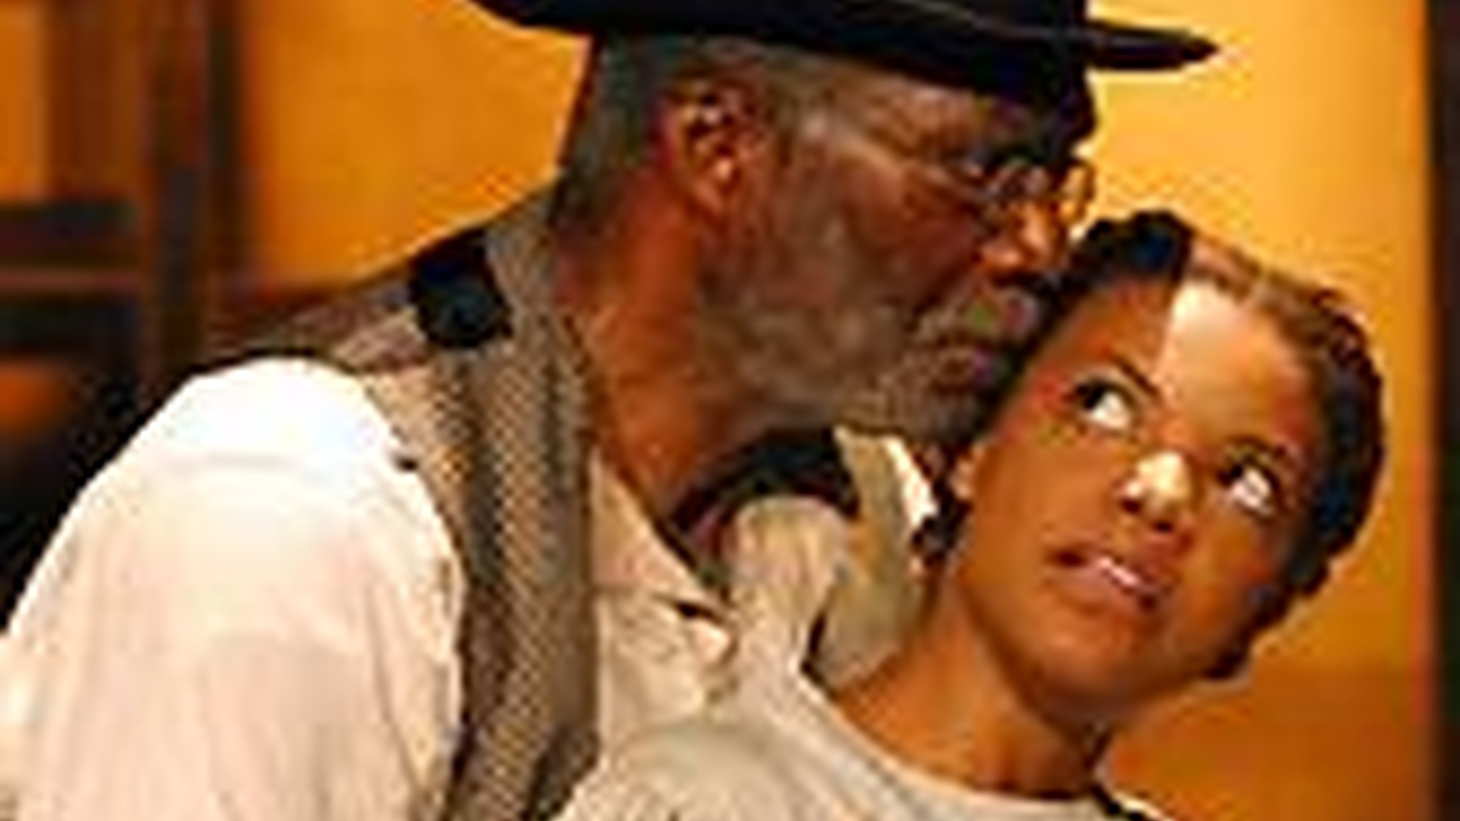 Two years ago, when August Wilson's final work Radio Golf was playing in Los Angeles, it was announced that the playwright was dying of liver cancer. Exactly two weeks after the show closed, Wilson passed away...